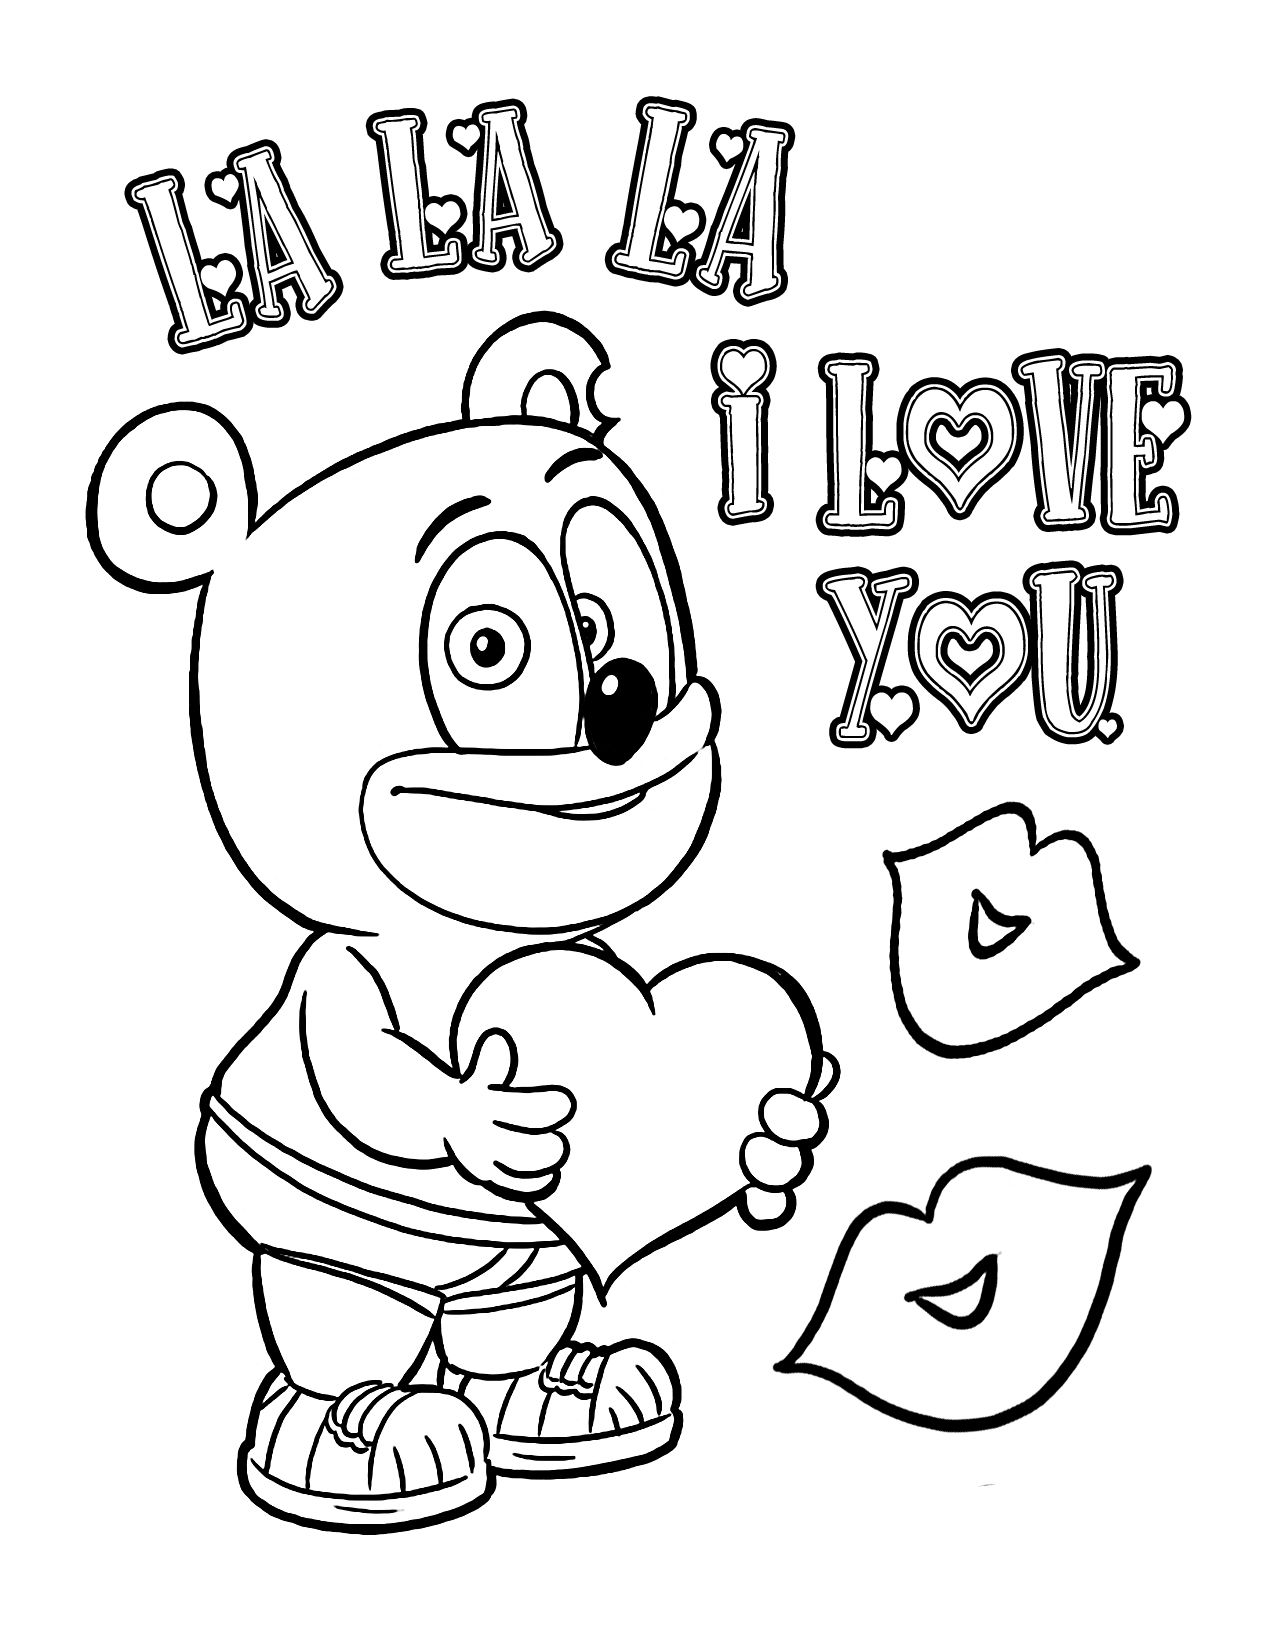 gummy bear coloring page gummibär the gummy bear coloring page lets play ball coloring bear gummy page